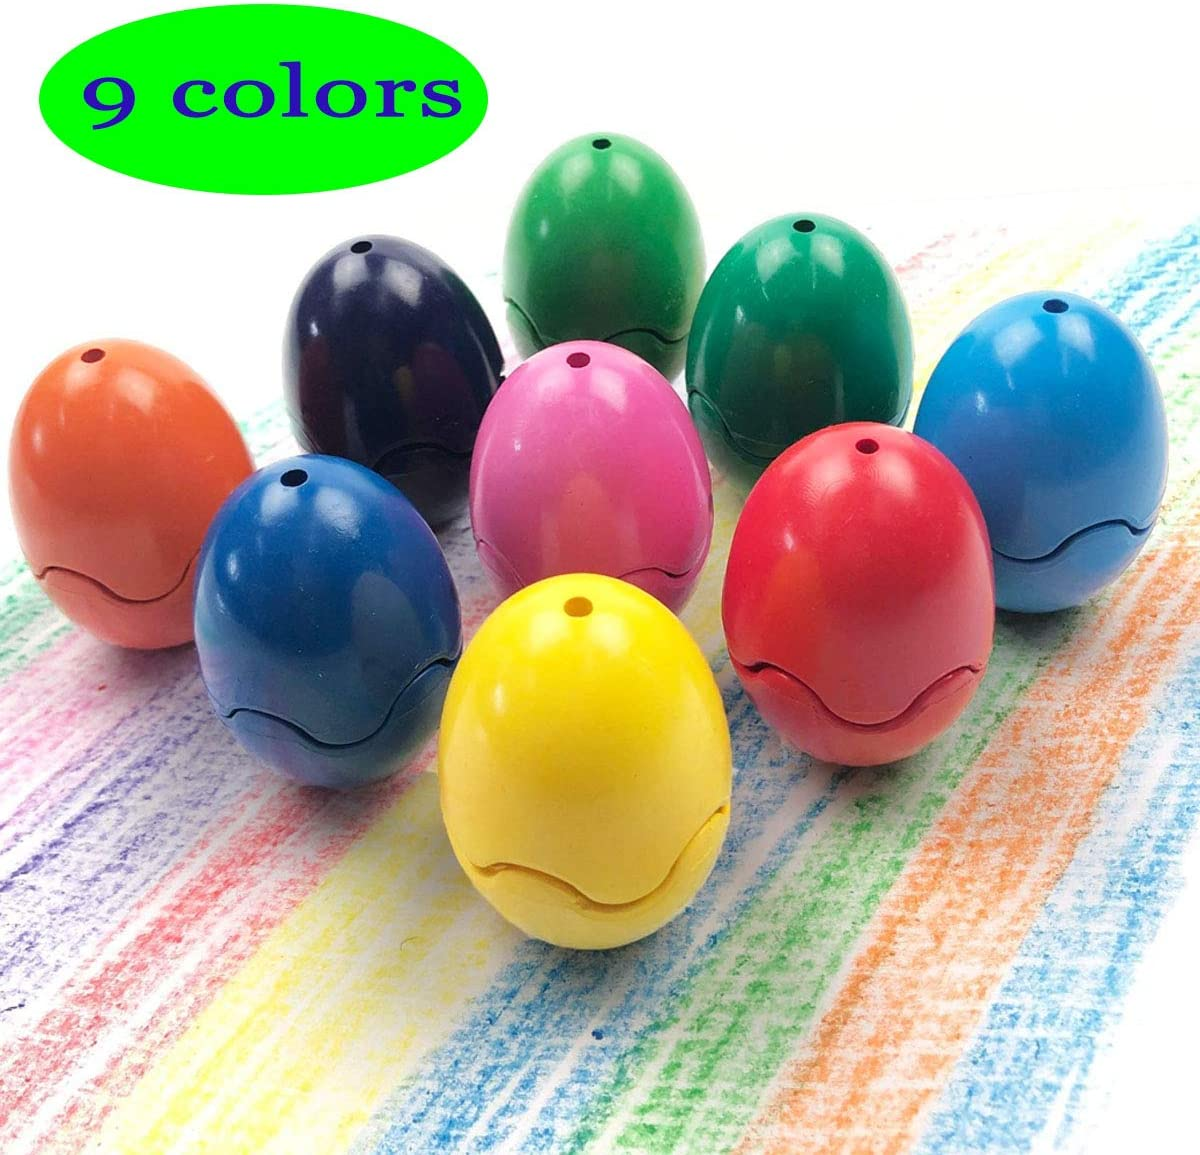 Jofan 9 Colors Crayons Eggs Easter Eggs Easter Basket Stuffers Gifts for Toddlers Kids Boys Grils